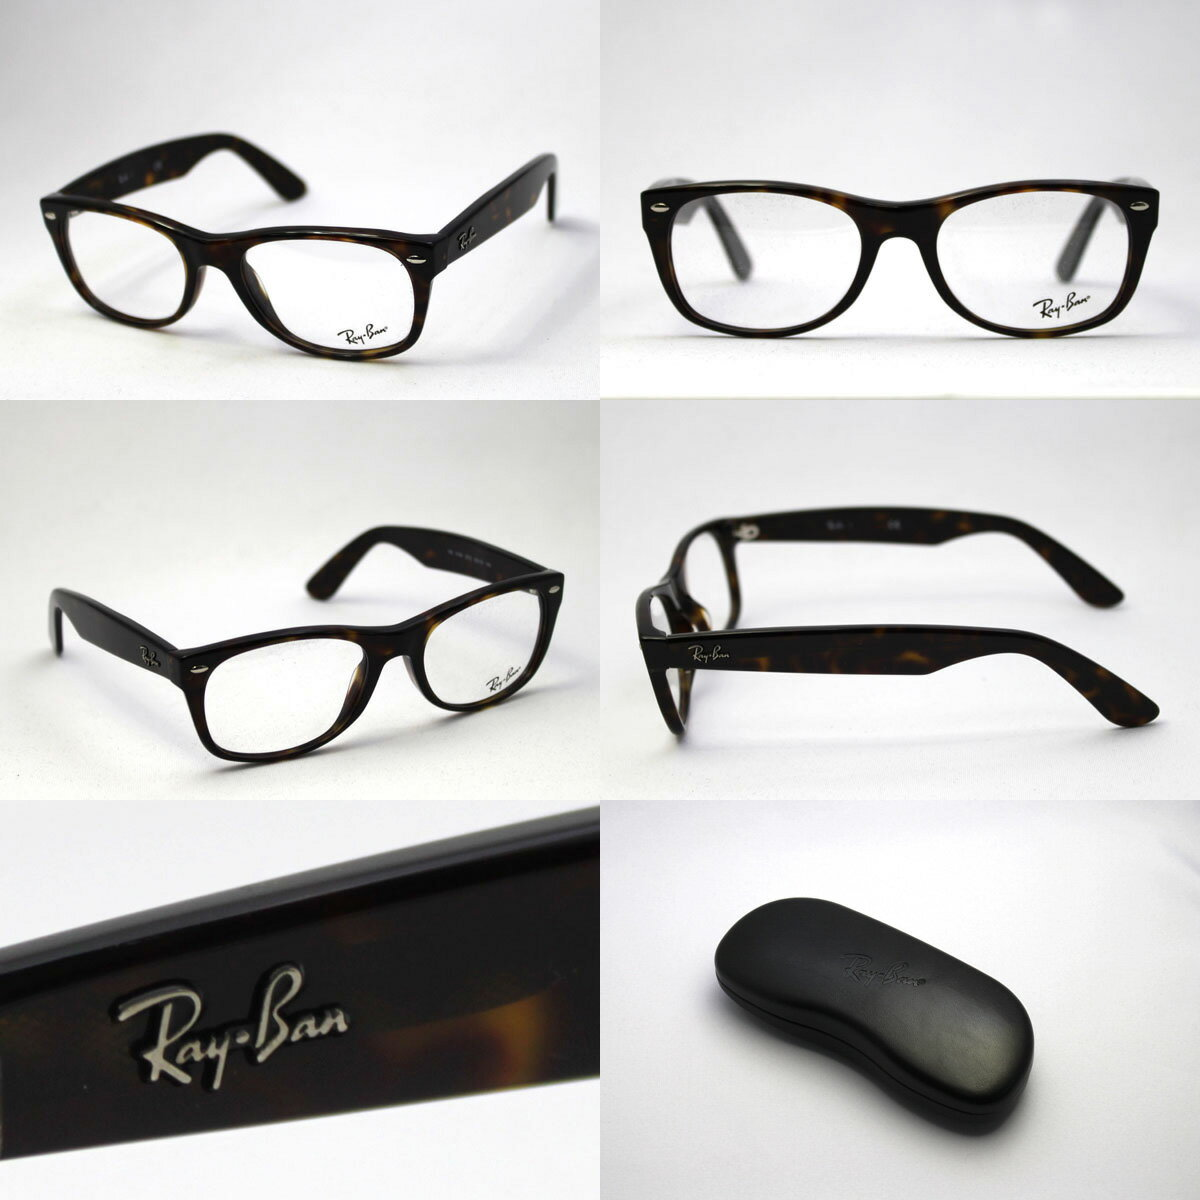 RayBan at Zando at great prices available in a range of sizes Shop for over  30 06cf877a19